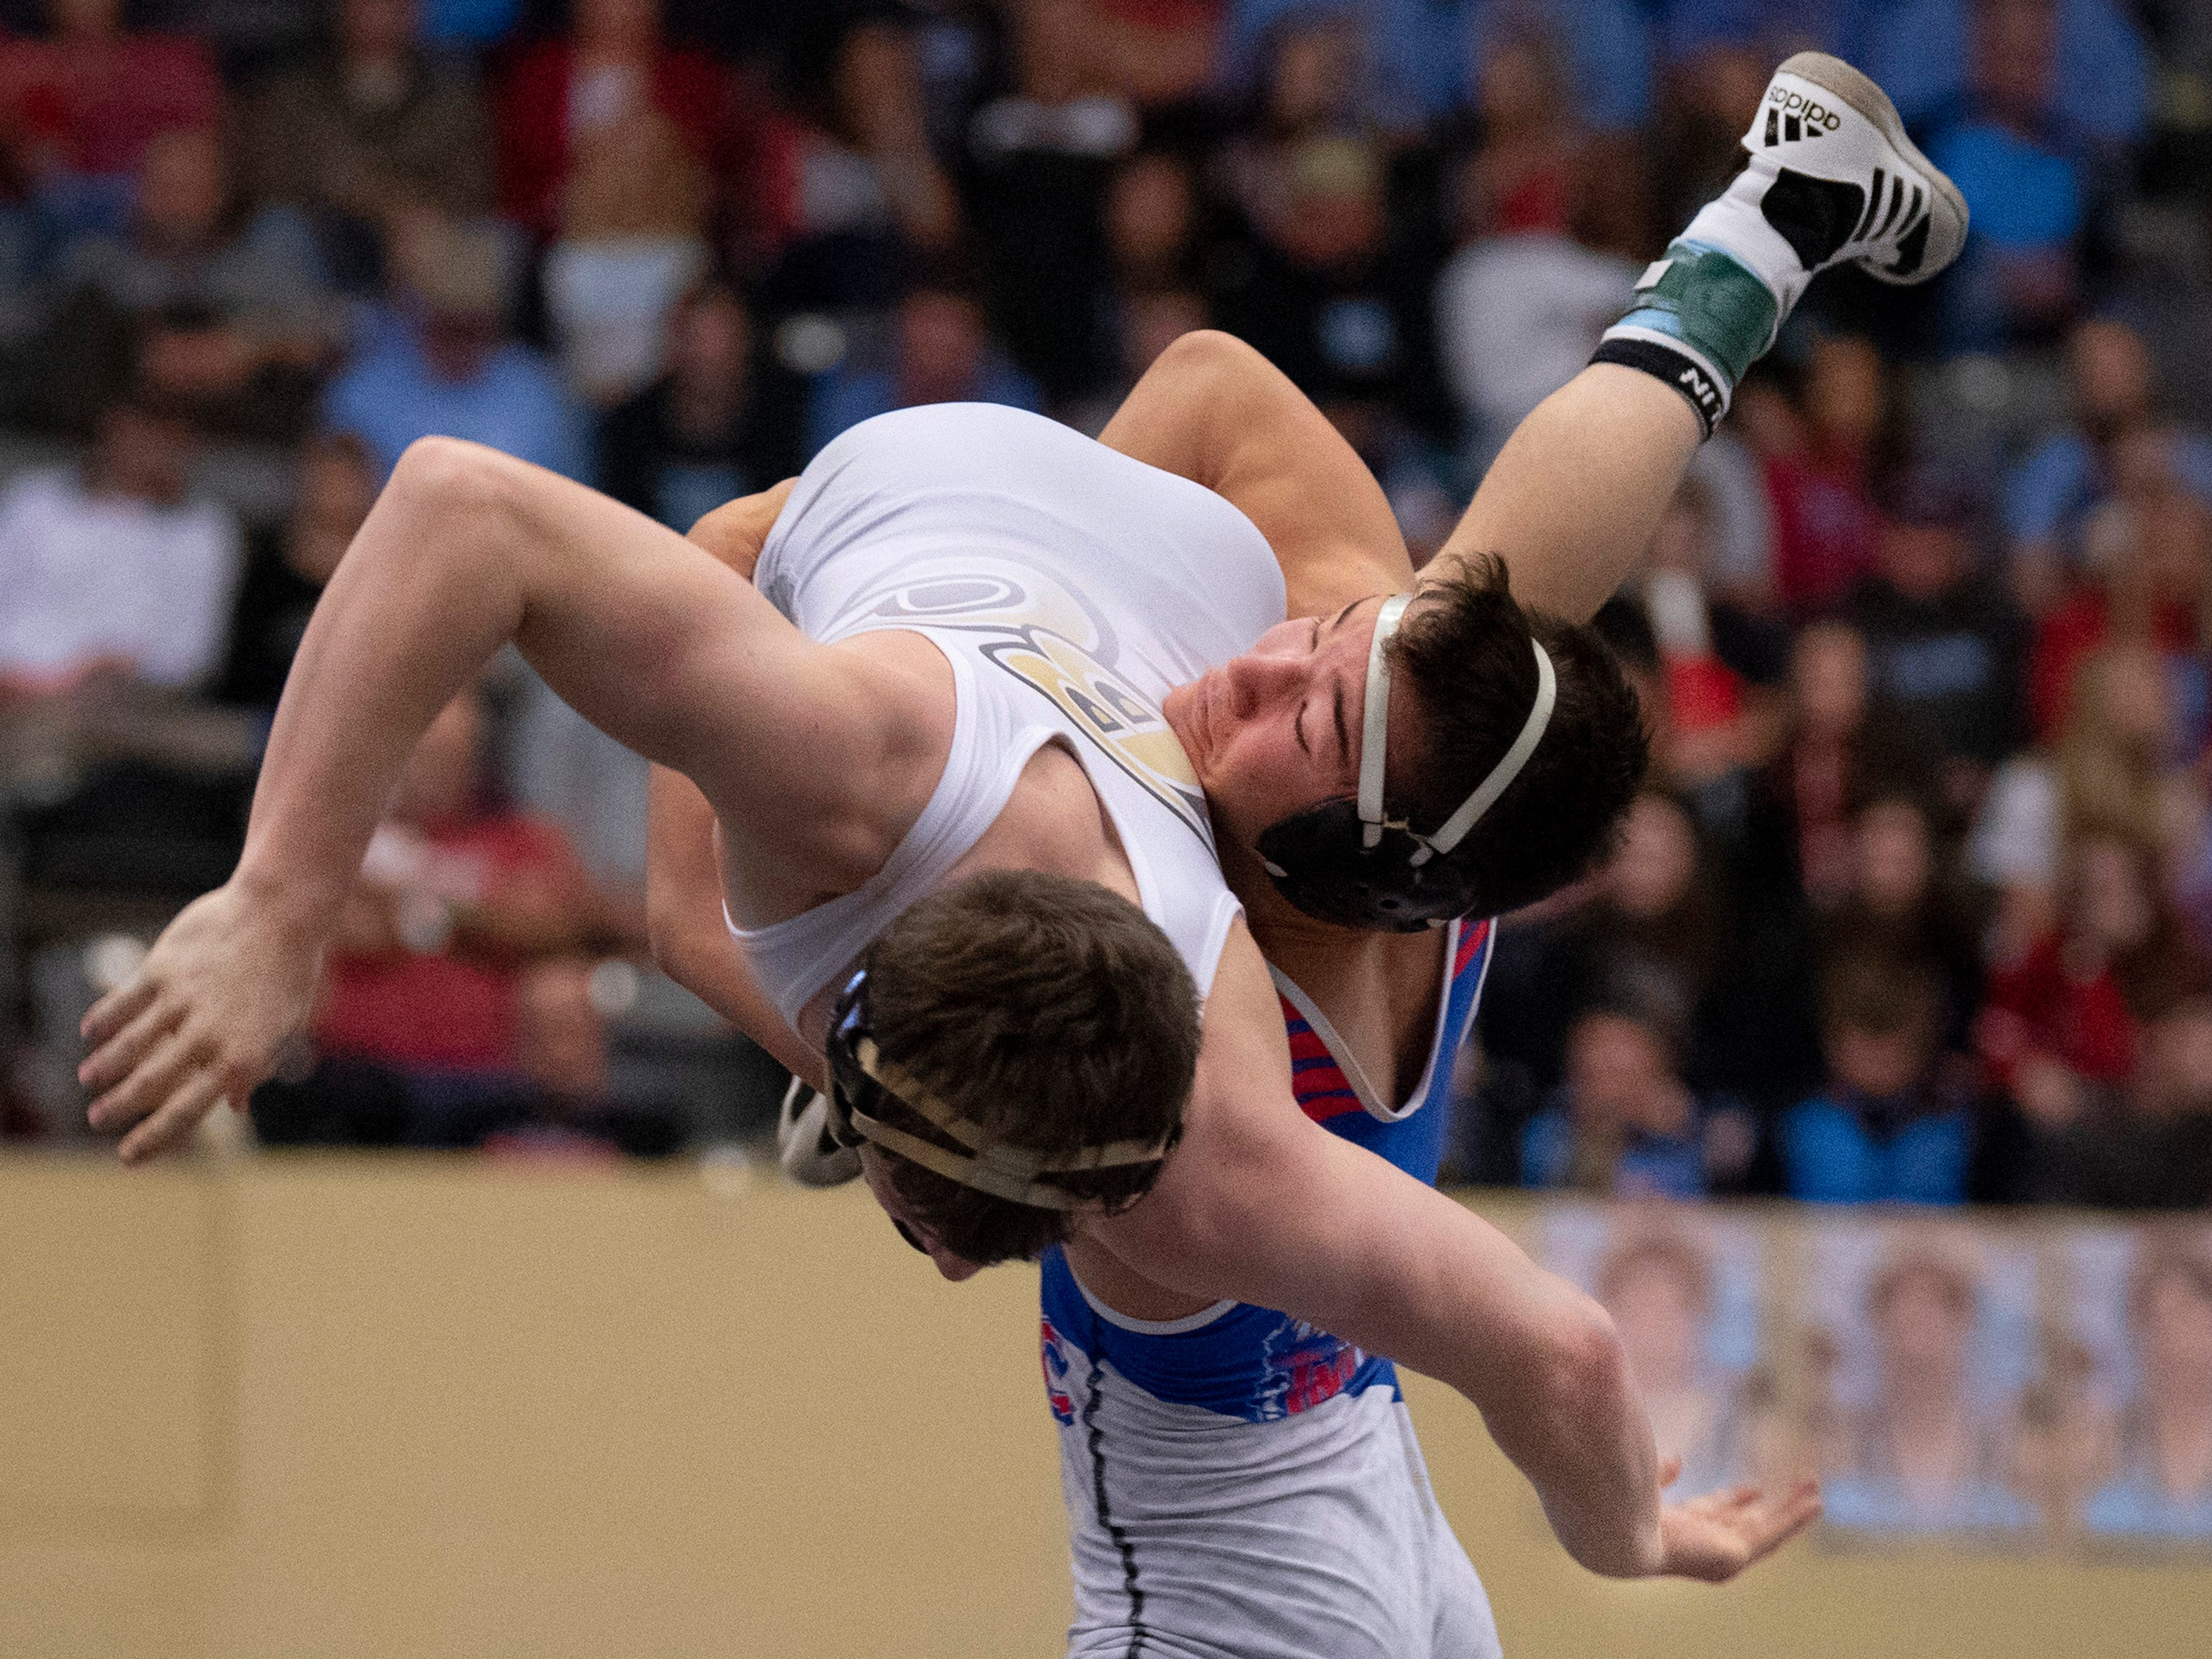 Madison Central's Gentry Deck takes down Boyle County's Jordan Bates during their 138-pound championship match at the KHSAA State Wrestling Championships at the Alltech Arena in Lexington, Ky., Saturday night. Bates came out on top with a 6-5 decision.